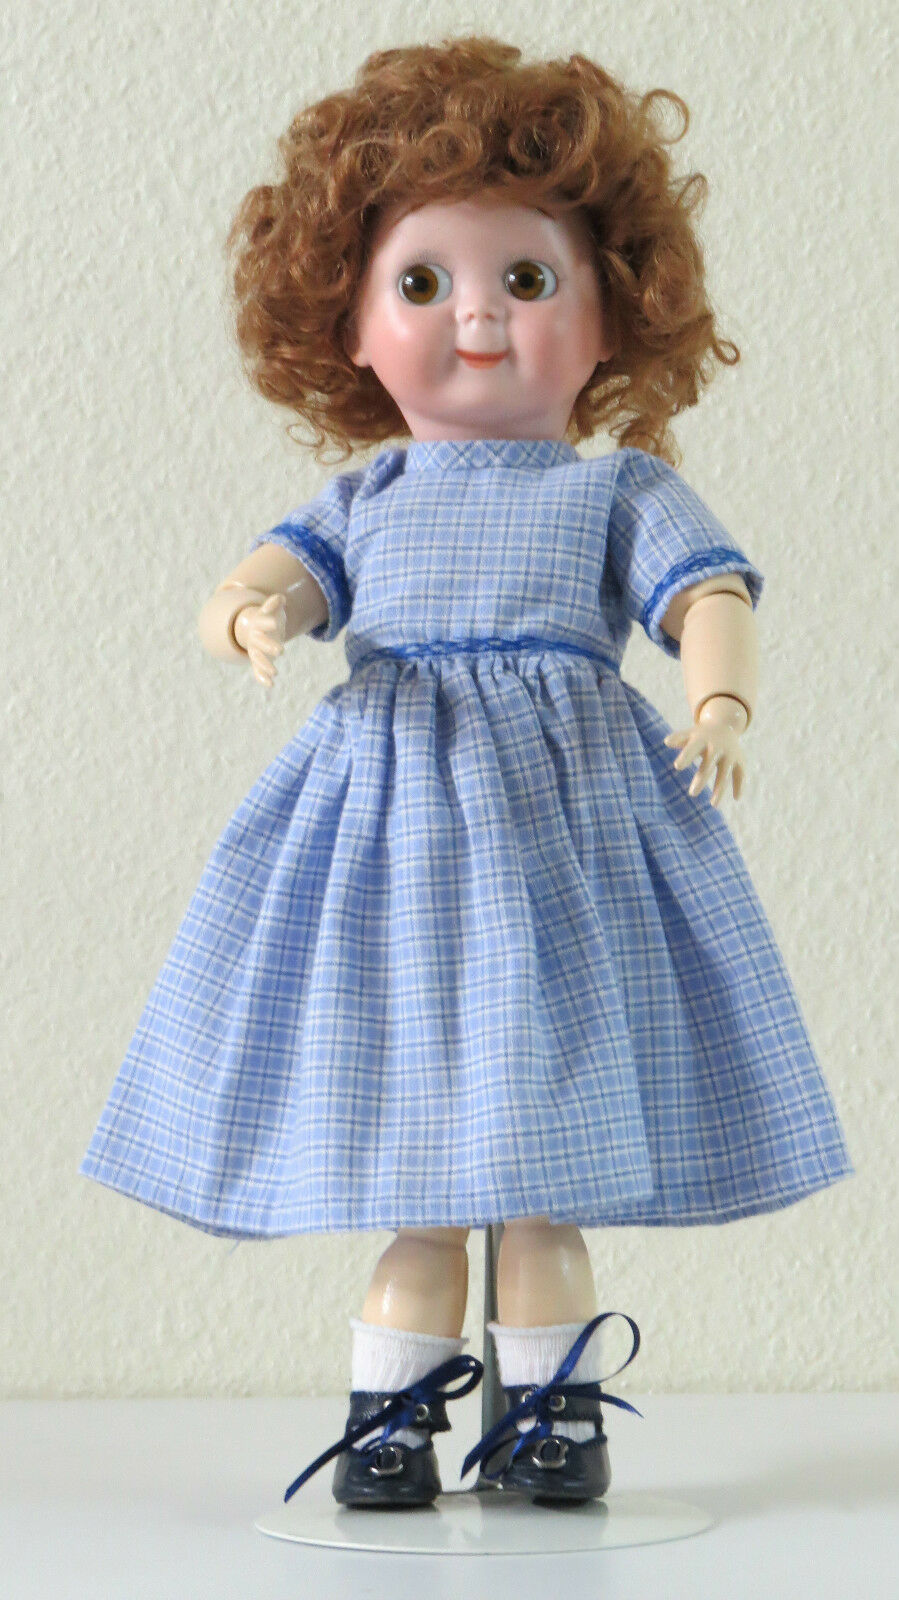 solo cómpralo JDK  221 221 221   :B  35 cm   14 Inch    Poupée Ancienne  Reproduction Antique doll  servicio honesto